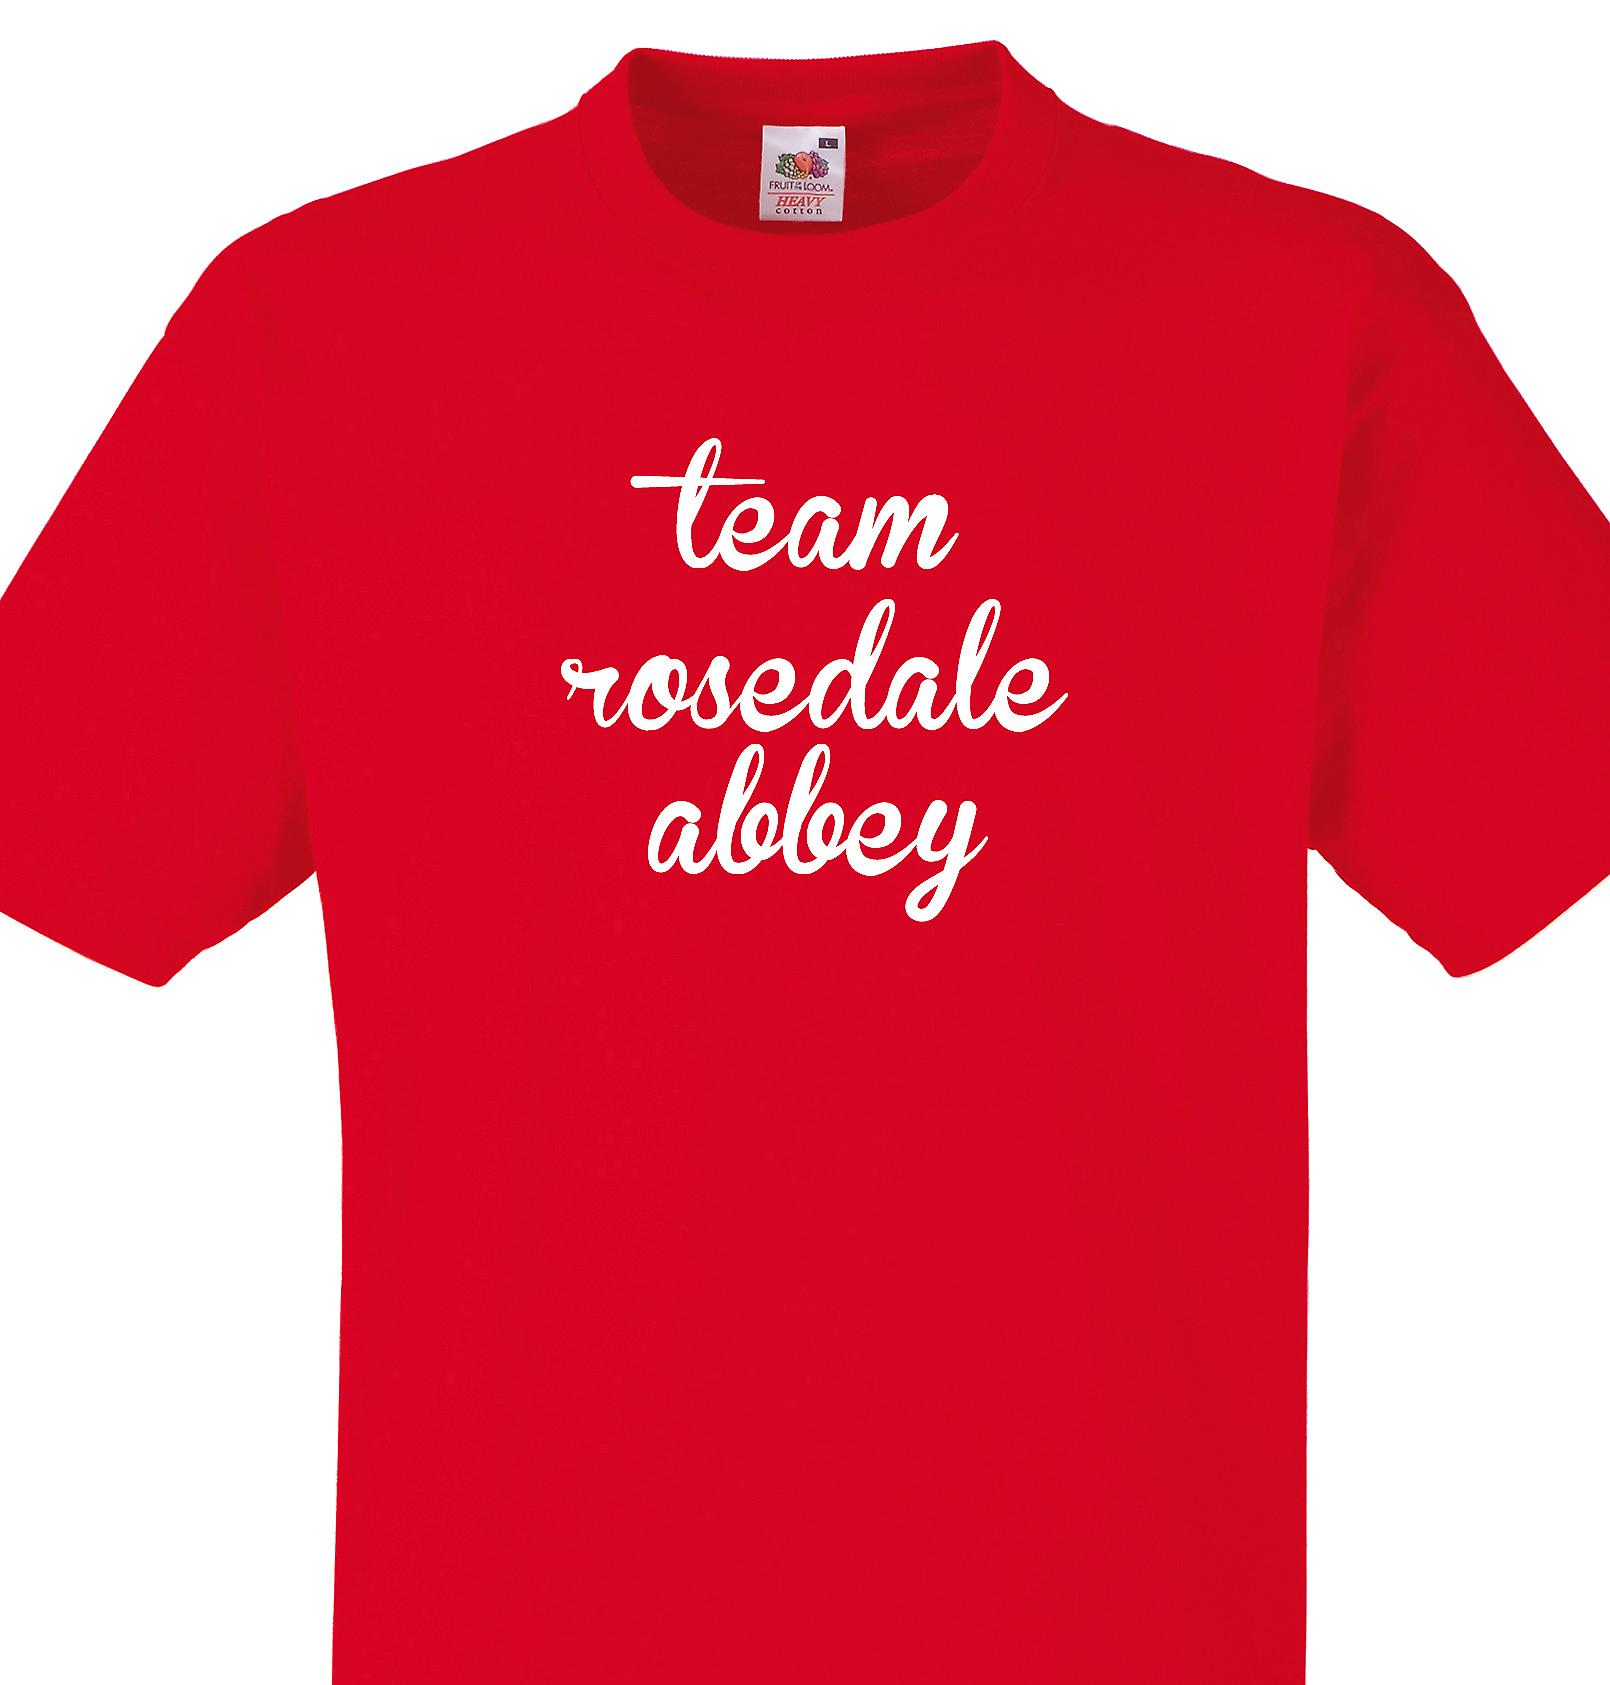 Team Rosedale abbey Red T shirt